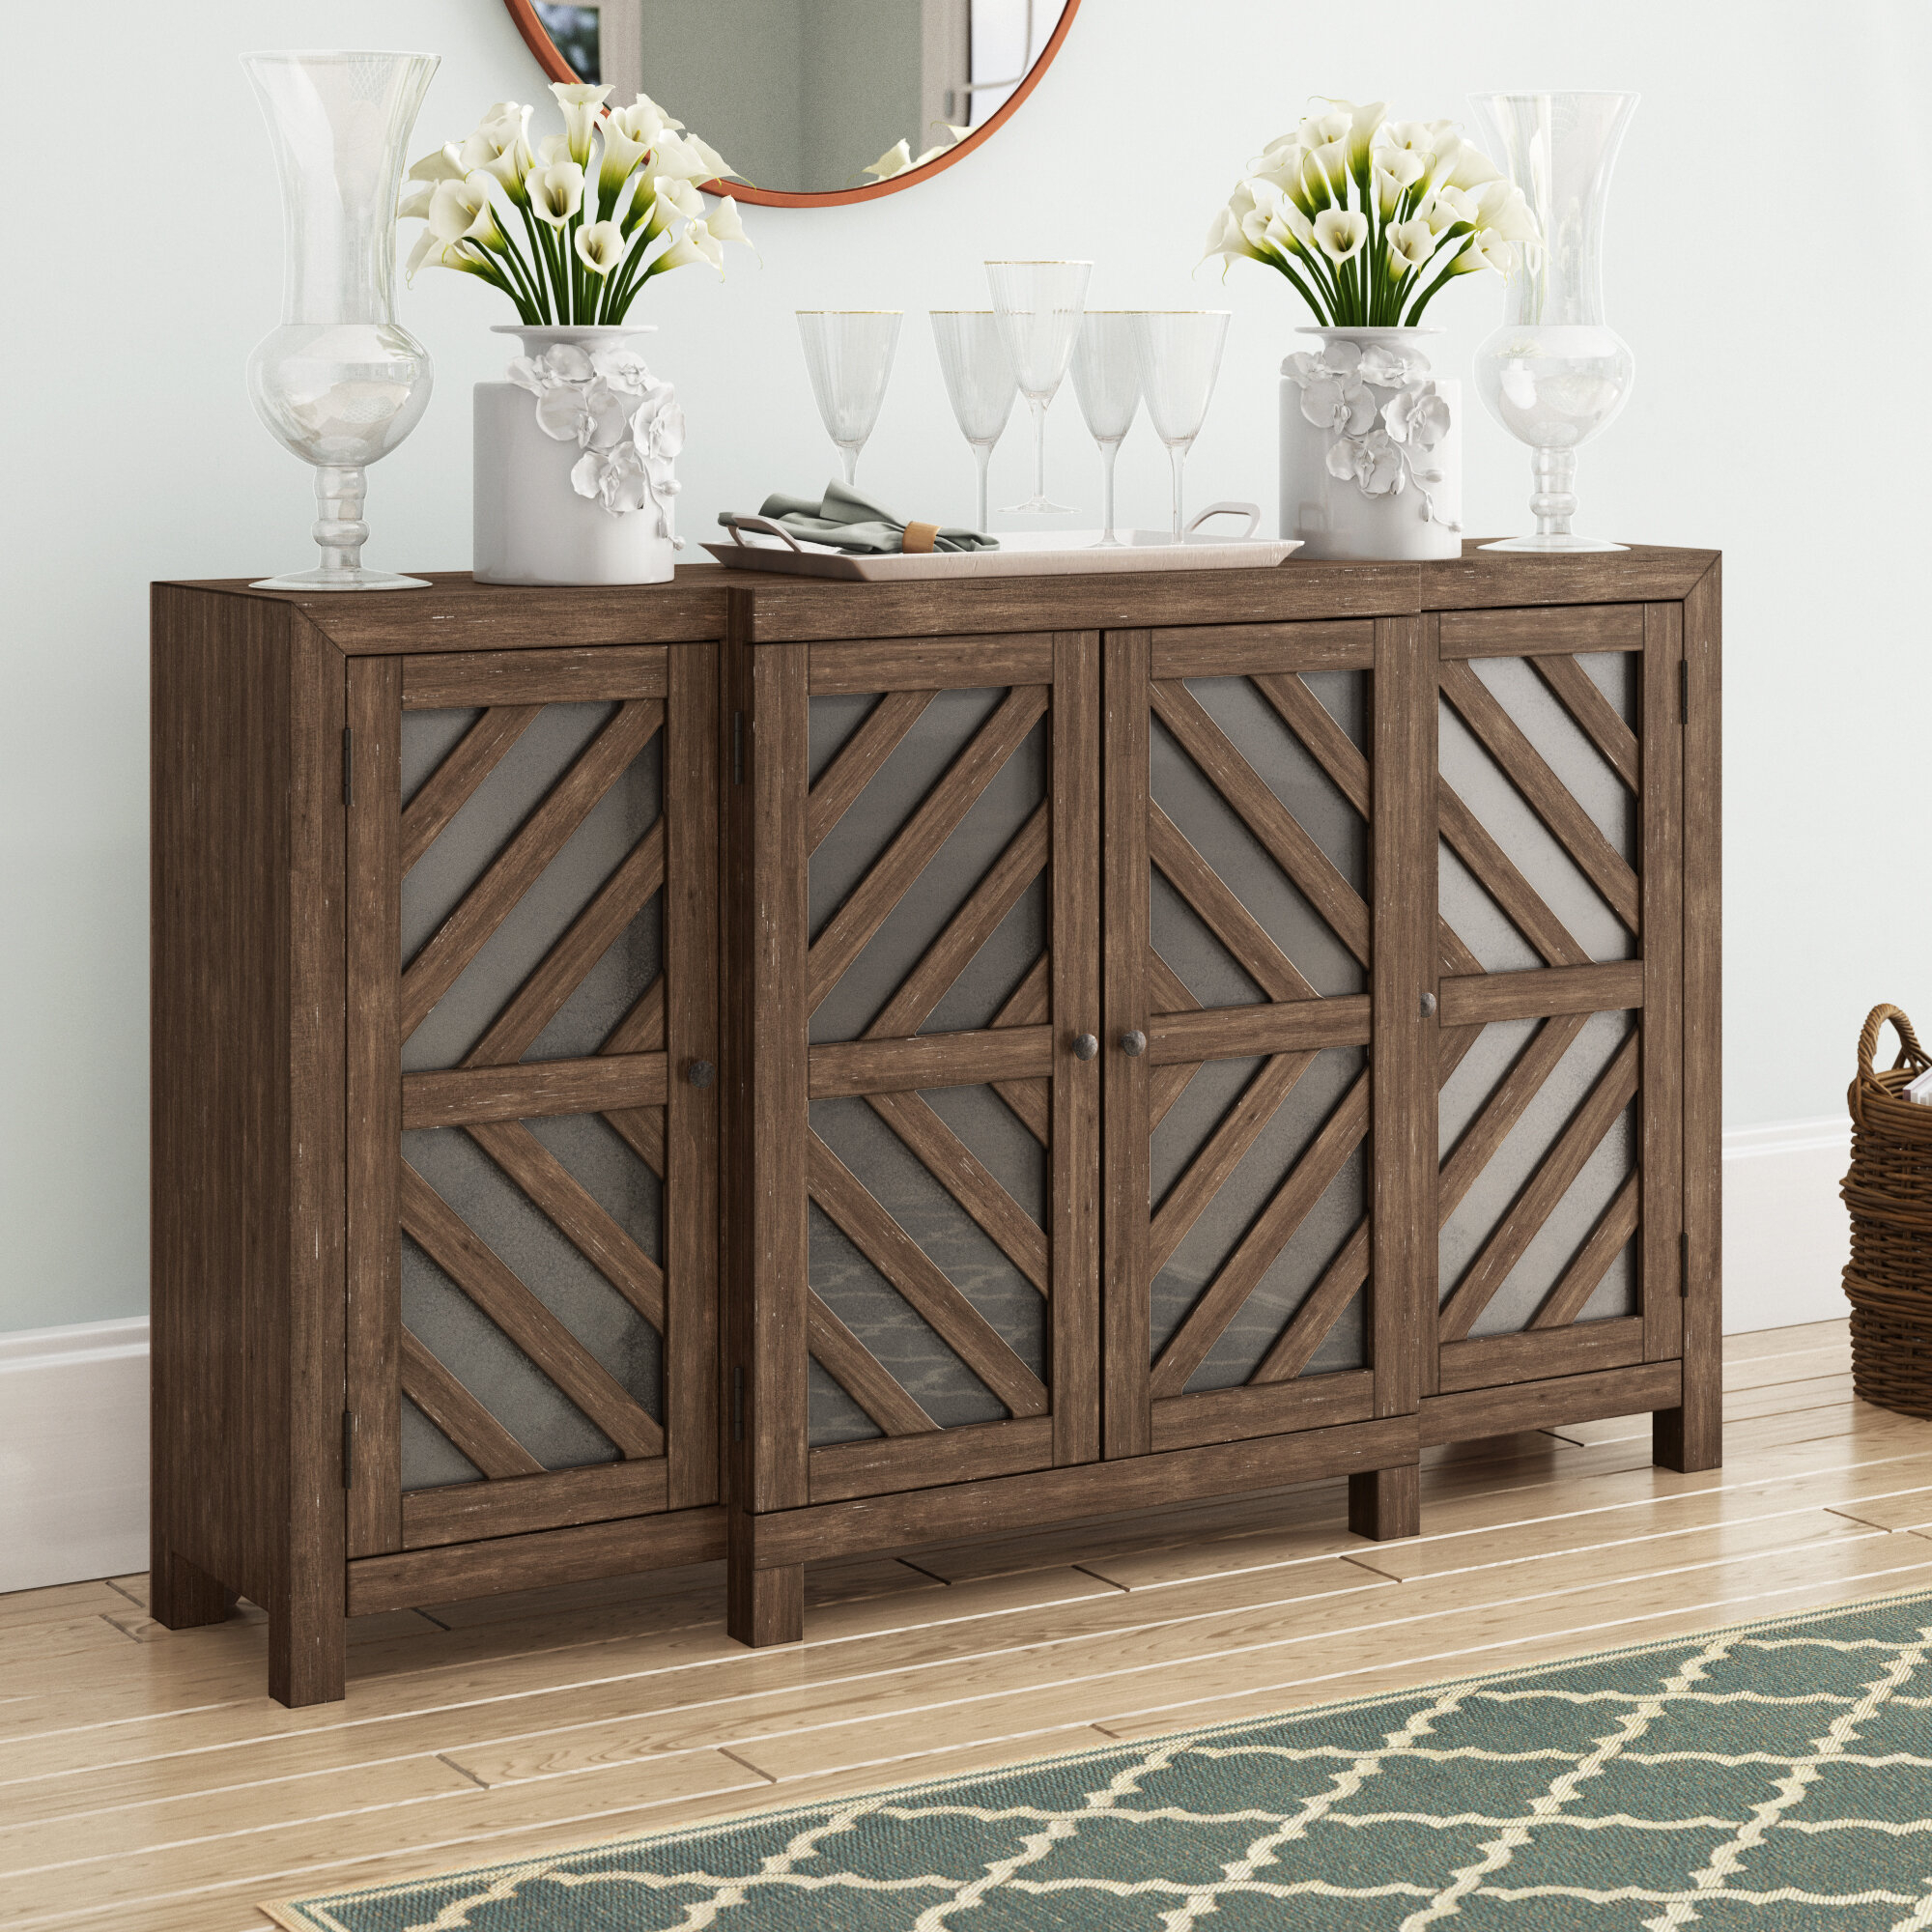 60 Inch Credenza | Wayfair for Senda Credenzas (Image 1 of 30)